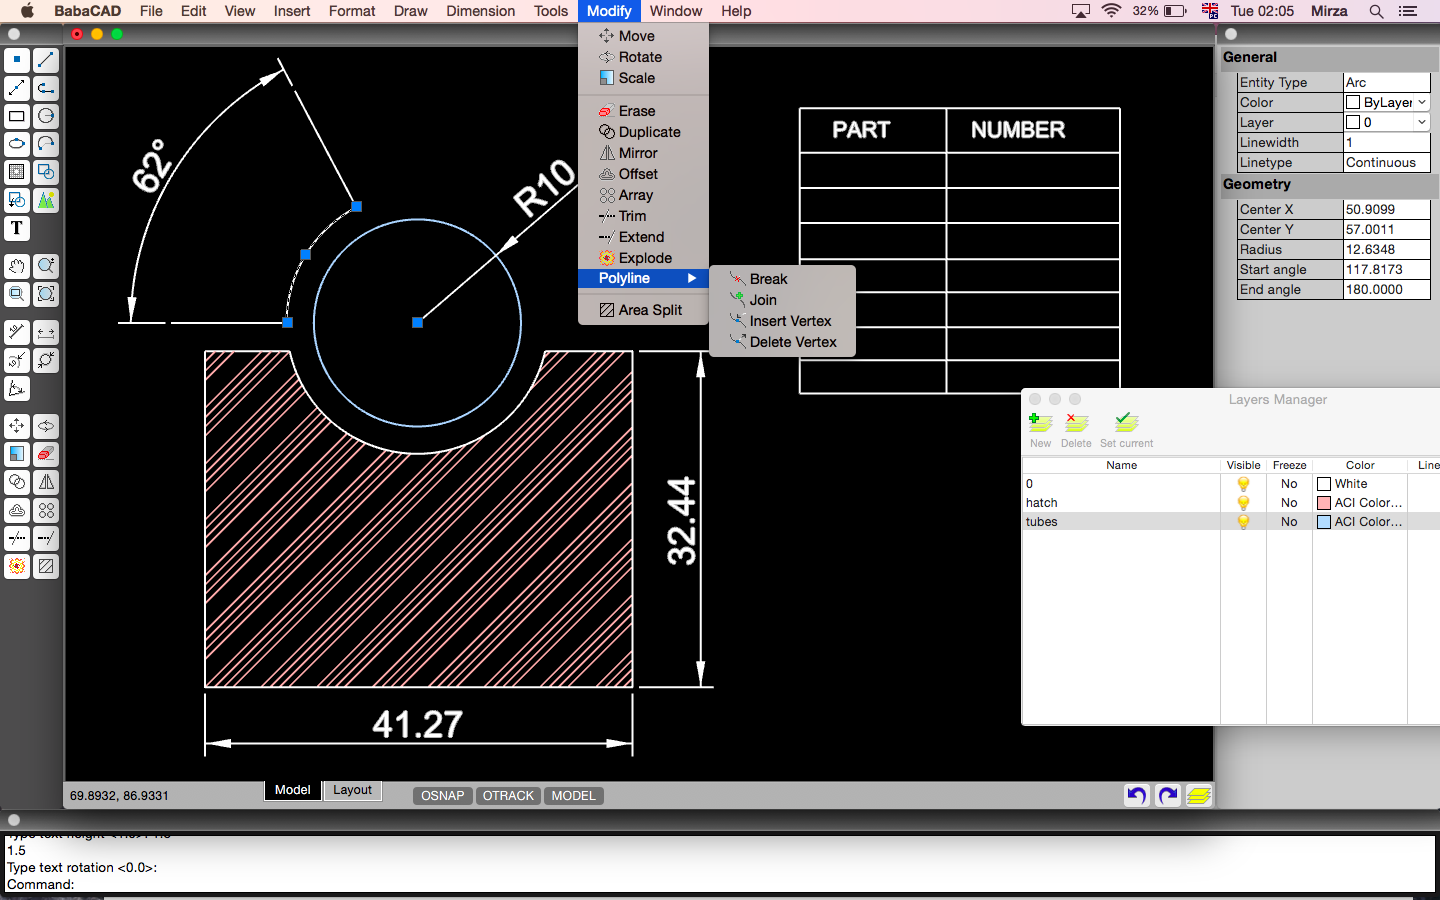 Babacad free cad software for mac os for Online cad drawing software